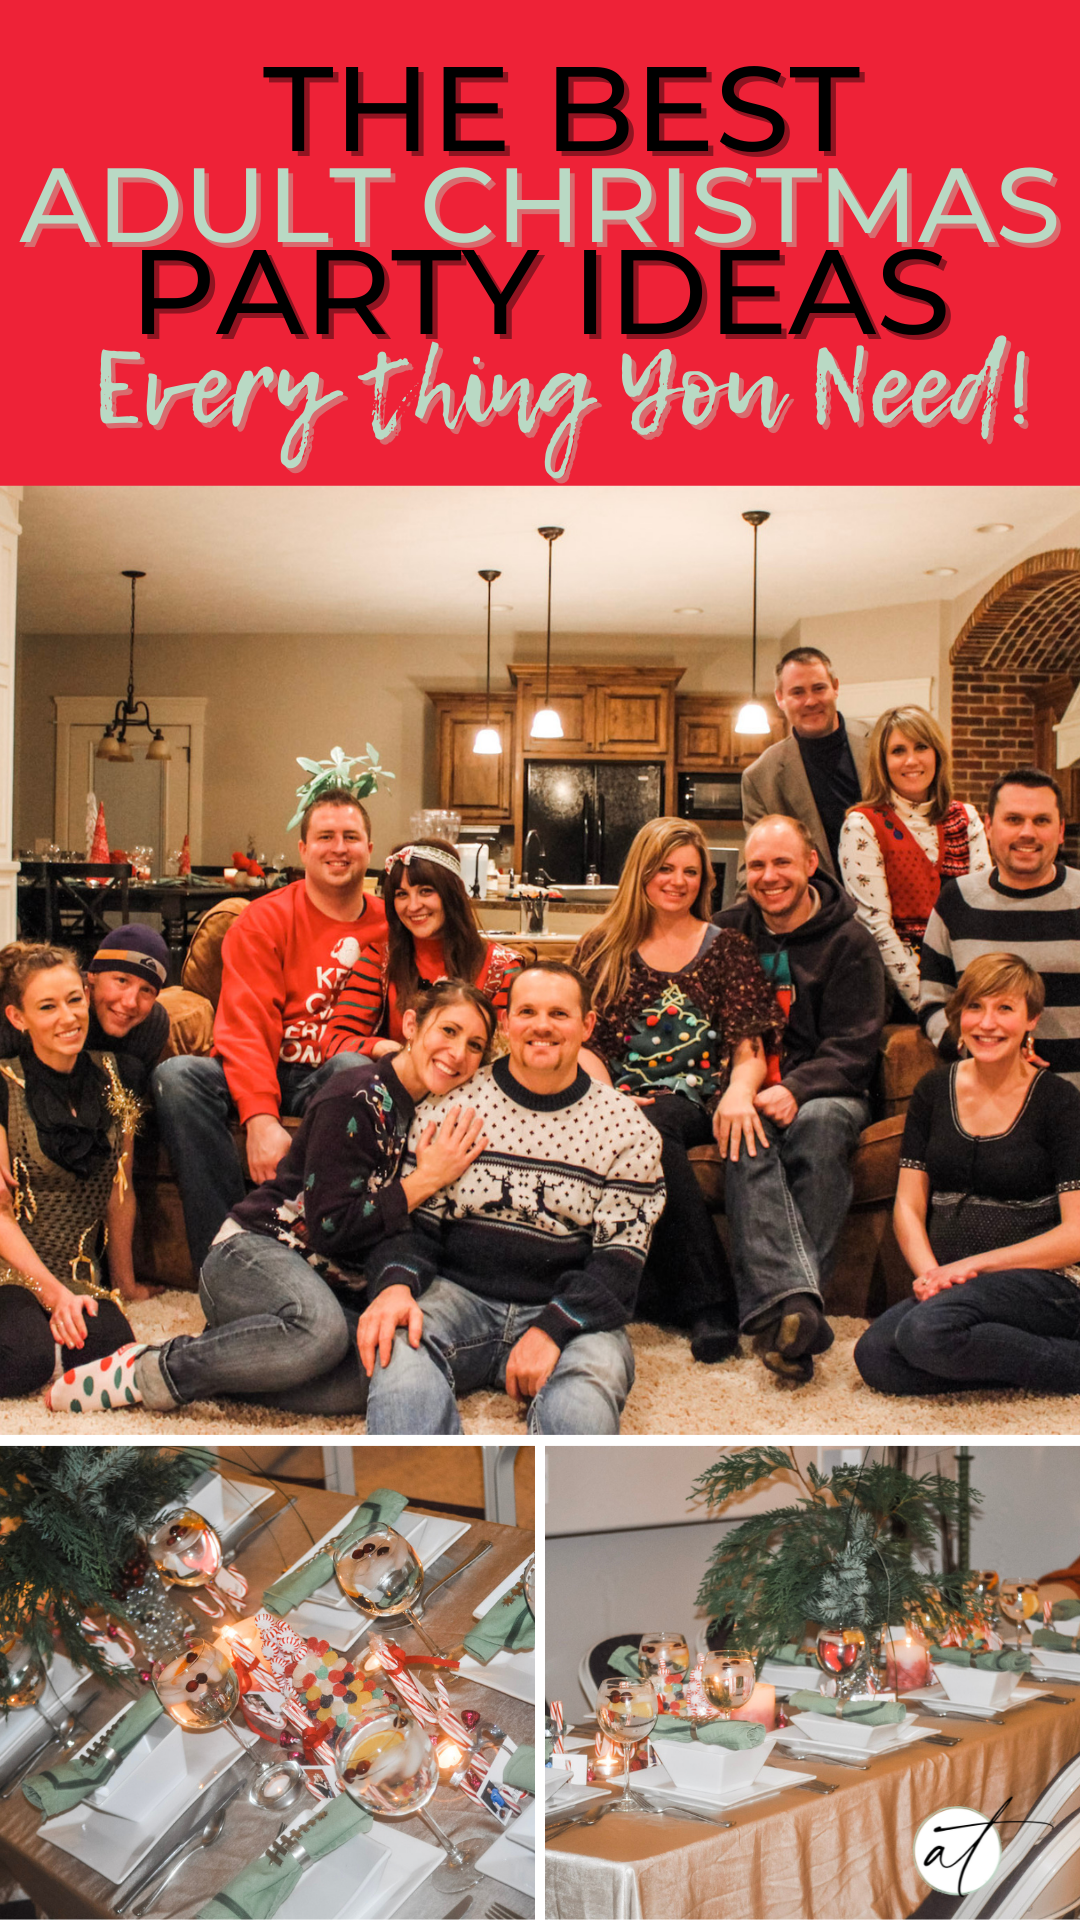 Pinterest image of fun looking group of friends having a good time at an adult Christmas party. Table scape ideas also featured in image